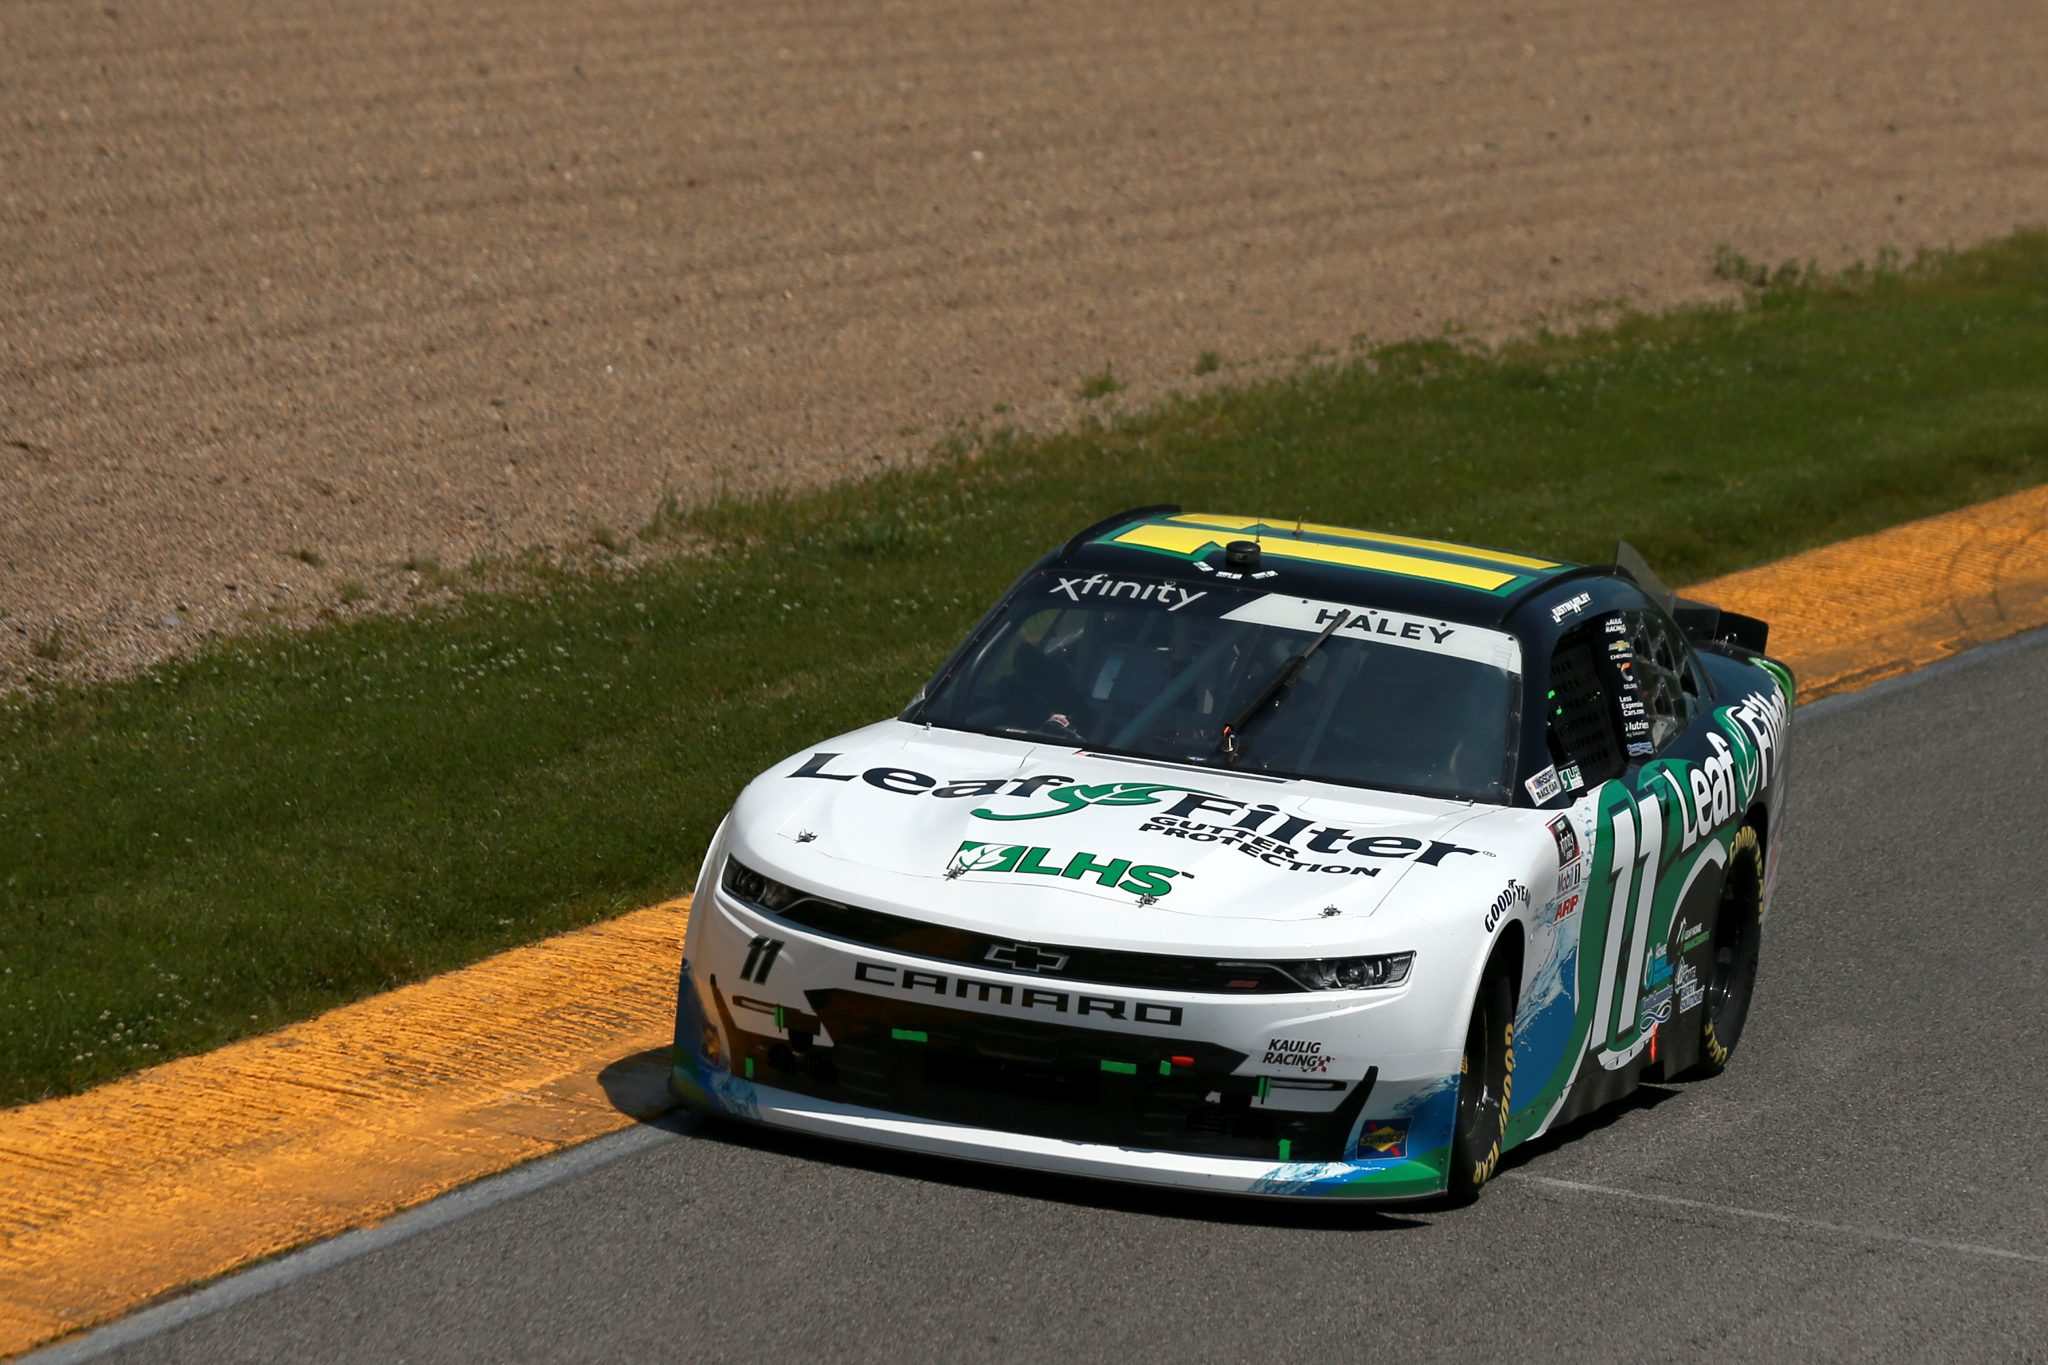 LEXINGTON, OHIO - JUNE 05: Justin Haley, driver of the #11 LeafFilter Gutter Protection Chevrolet, drives during the NASCAR Xfinity Series B&L Transport 170 at Mid-Ohio Sports Car Course on June 05, 2021 in Lexington, Ohio. (Photo by Sean Gardner/Getty Images) | Getty Images